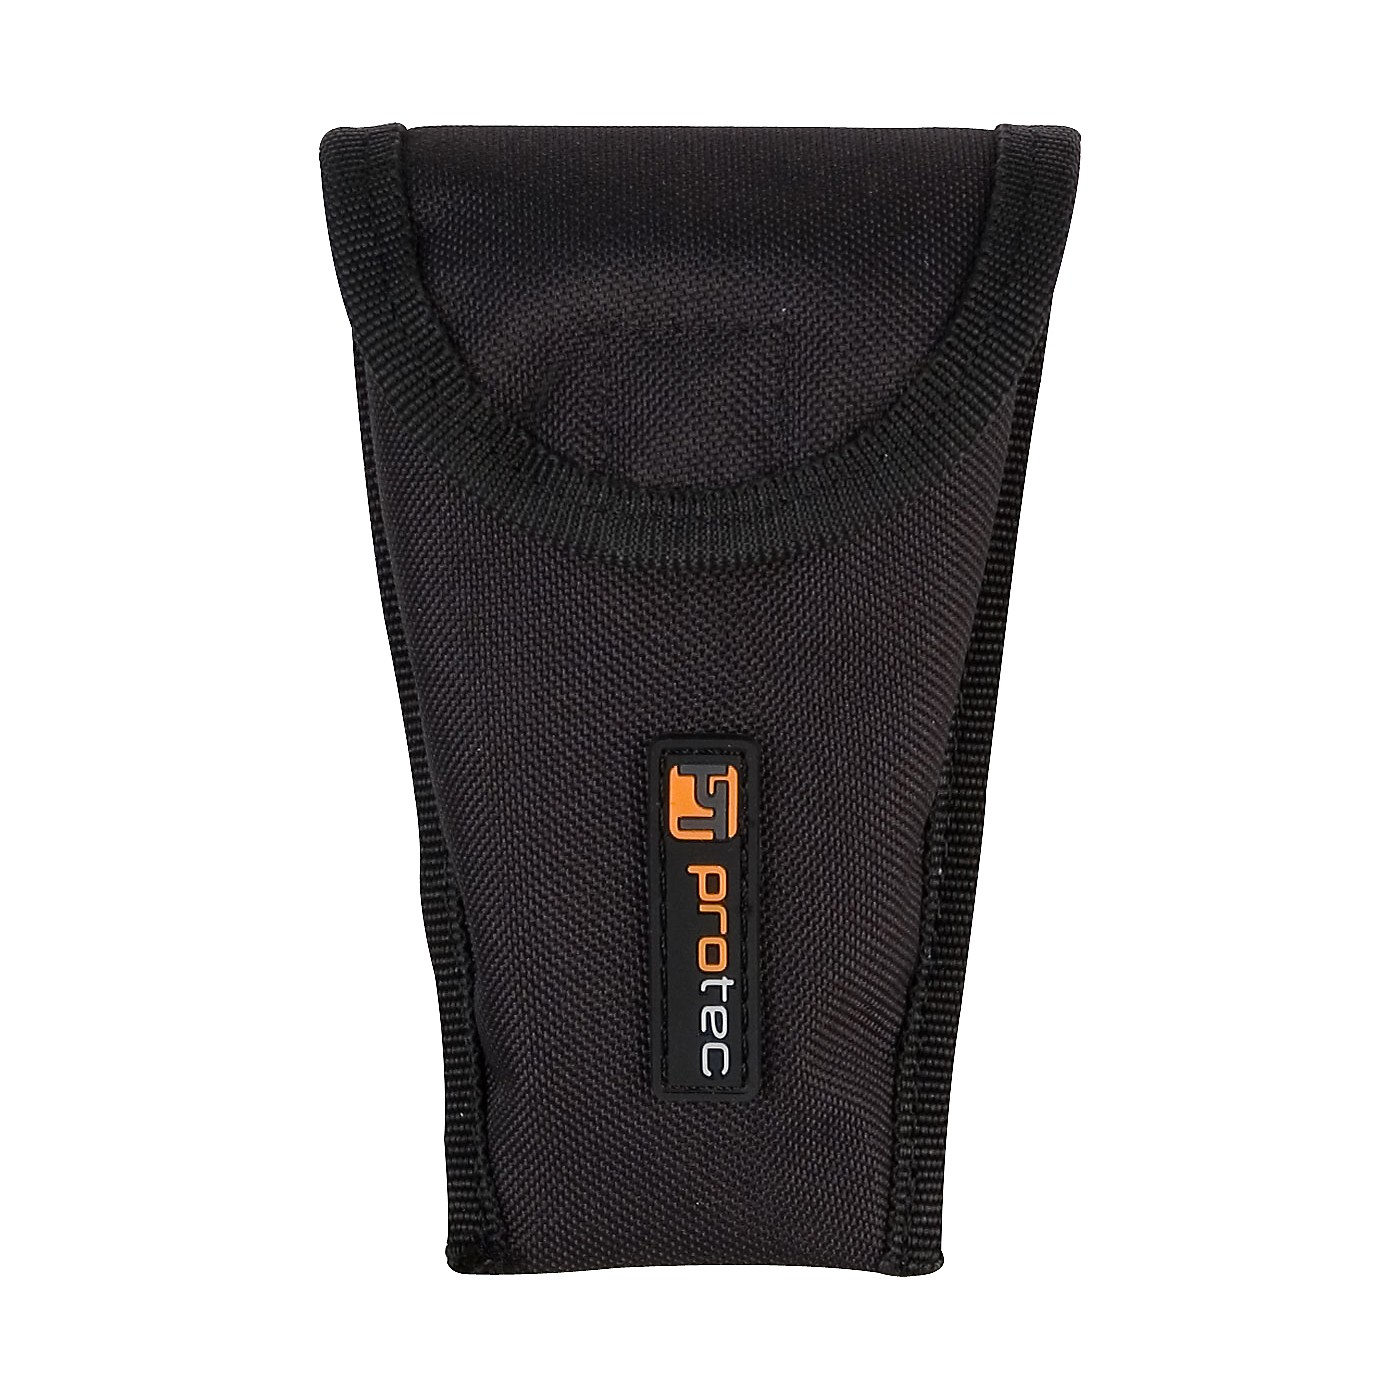 Protec A205 Deluxe Padded Tuba Mouthpiece Pouch thumbnail